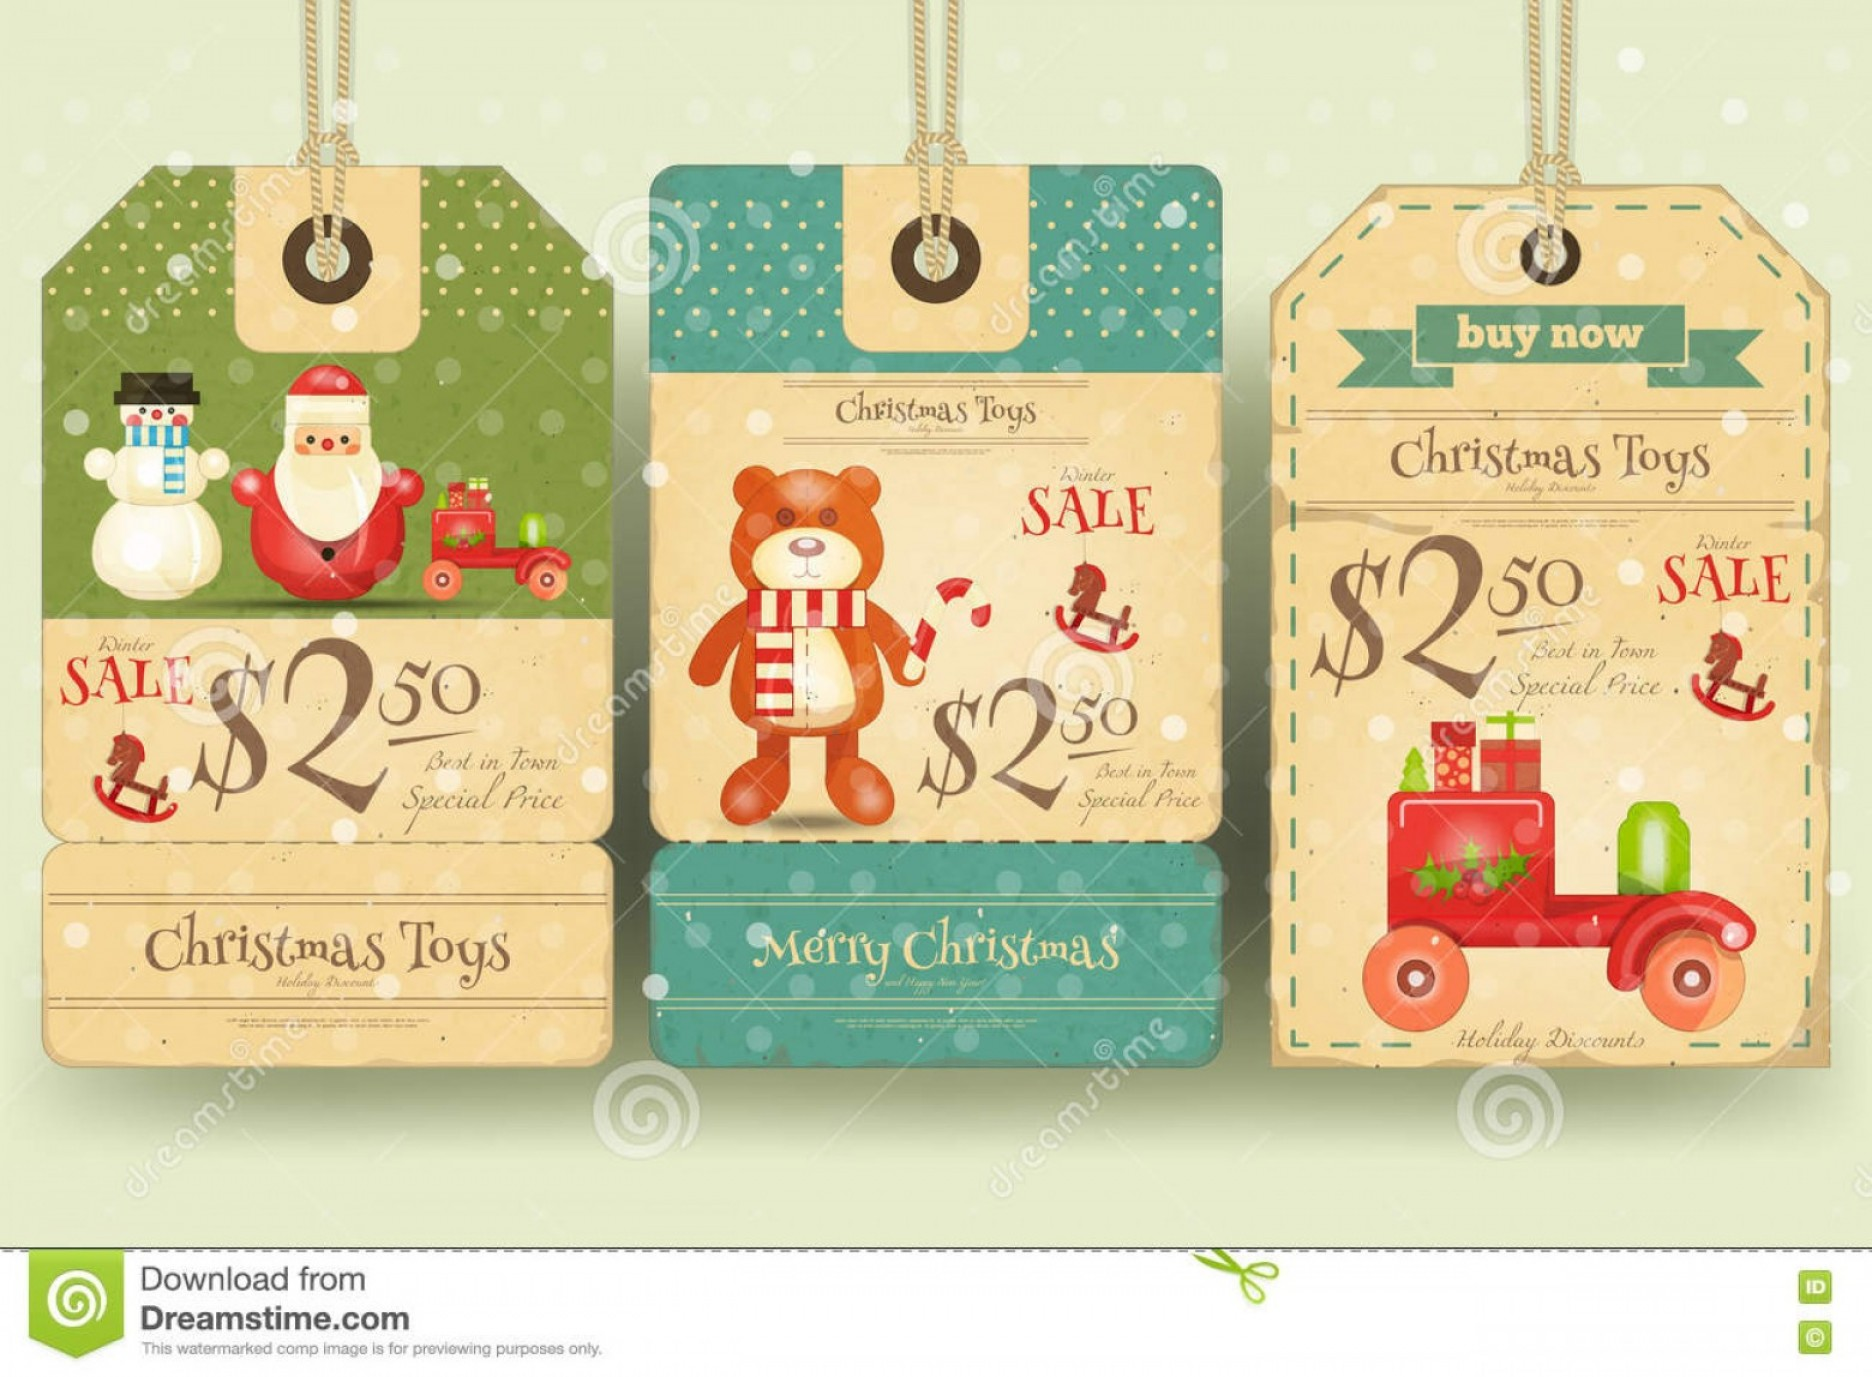 Vintage Xmas Sale Tag Vector: Stock Illustration Christmas Toys Sale Tags Retro Style Vector Illustration Image